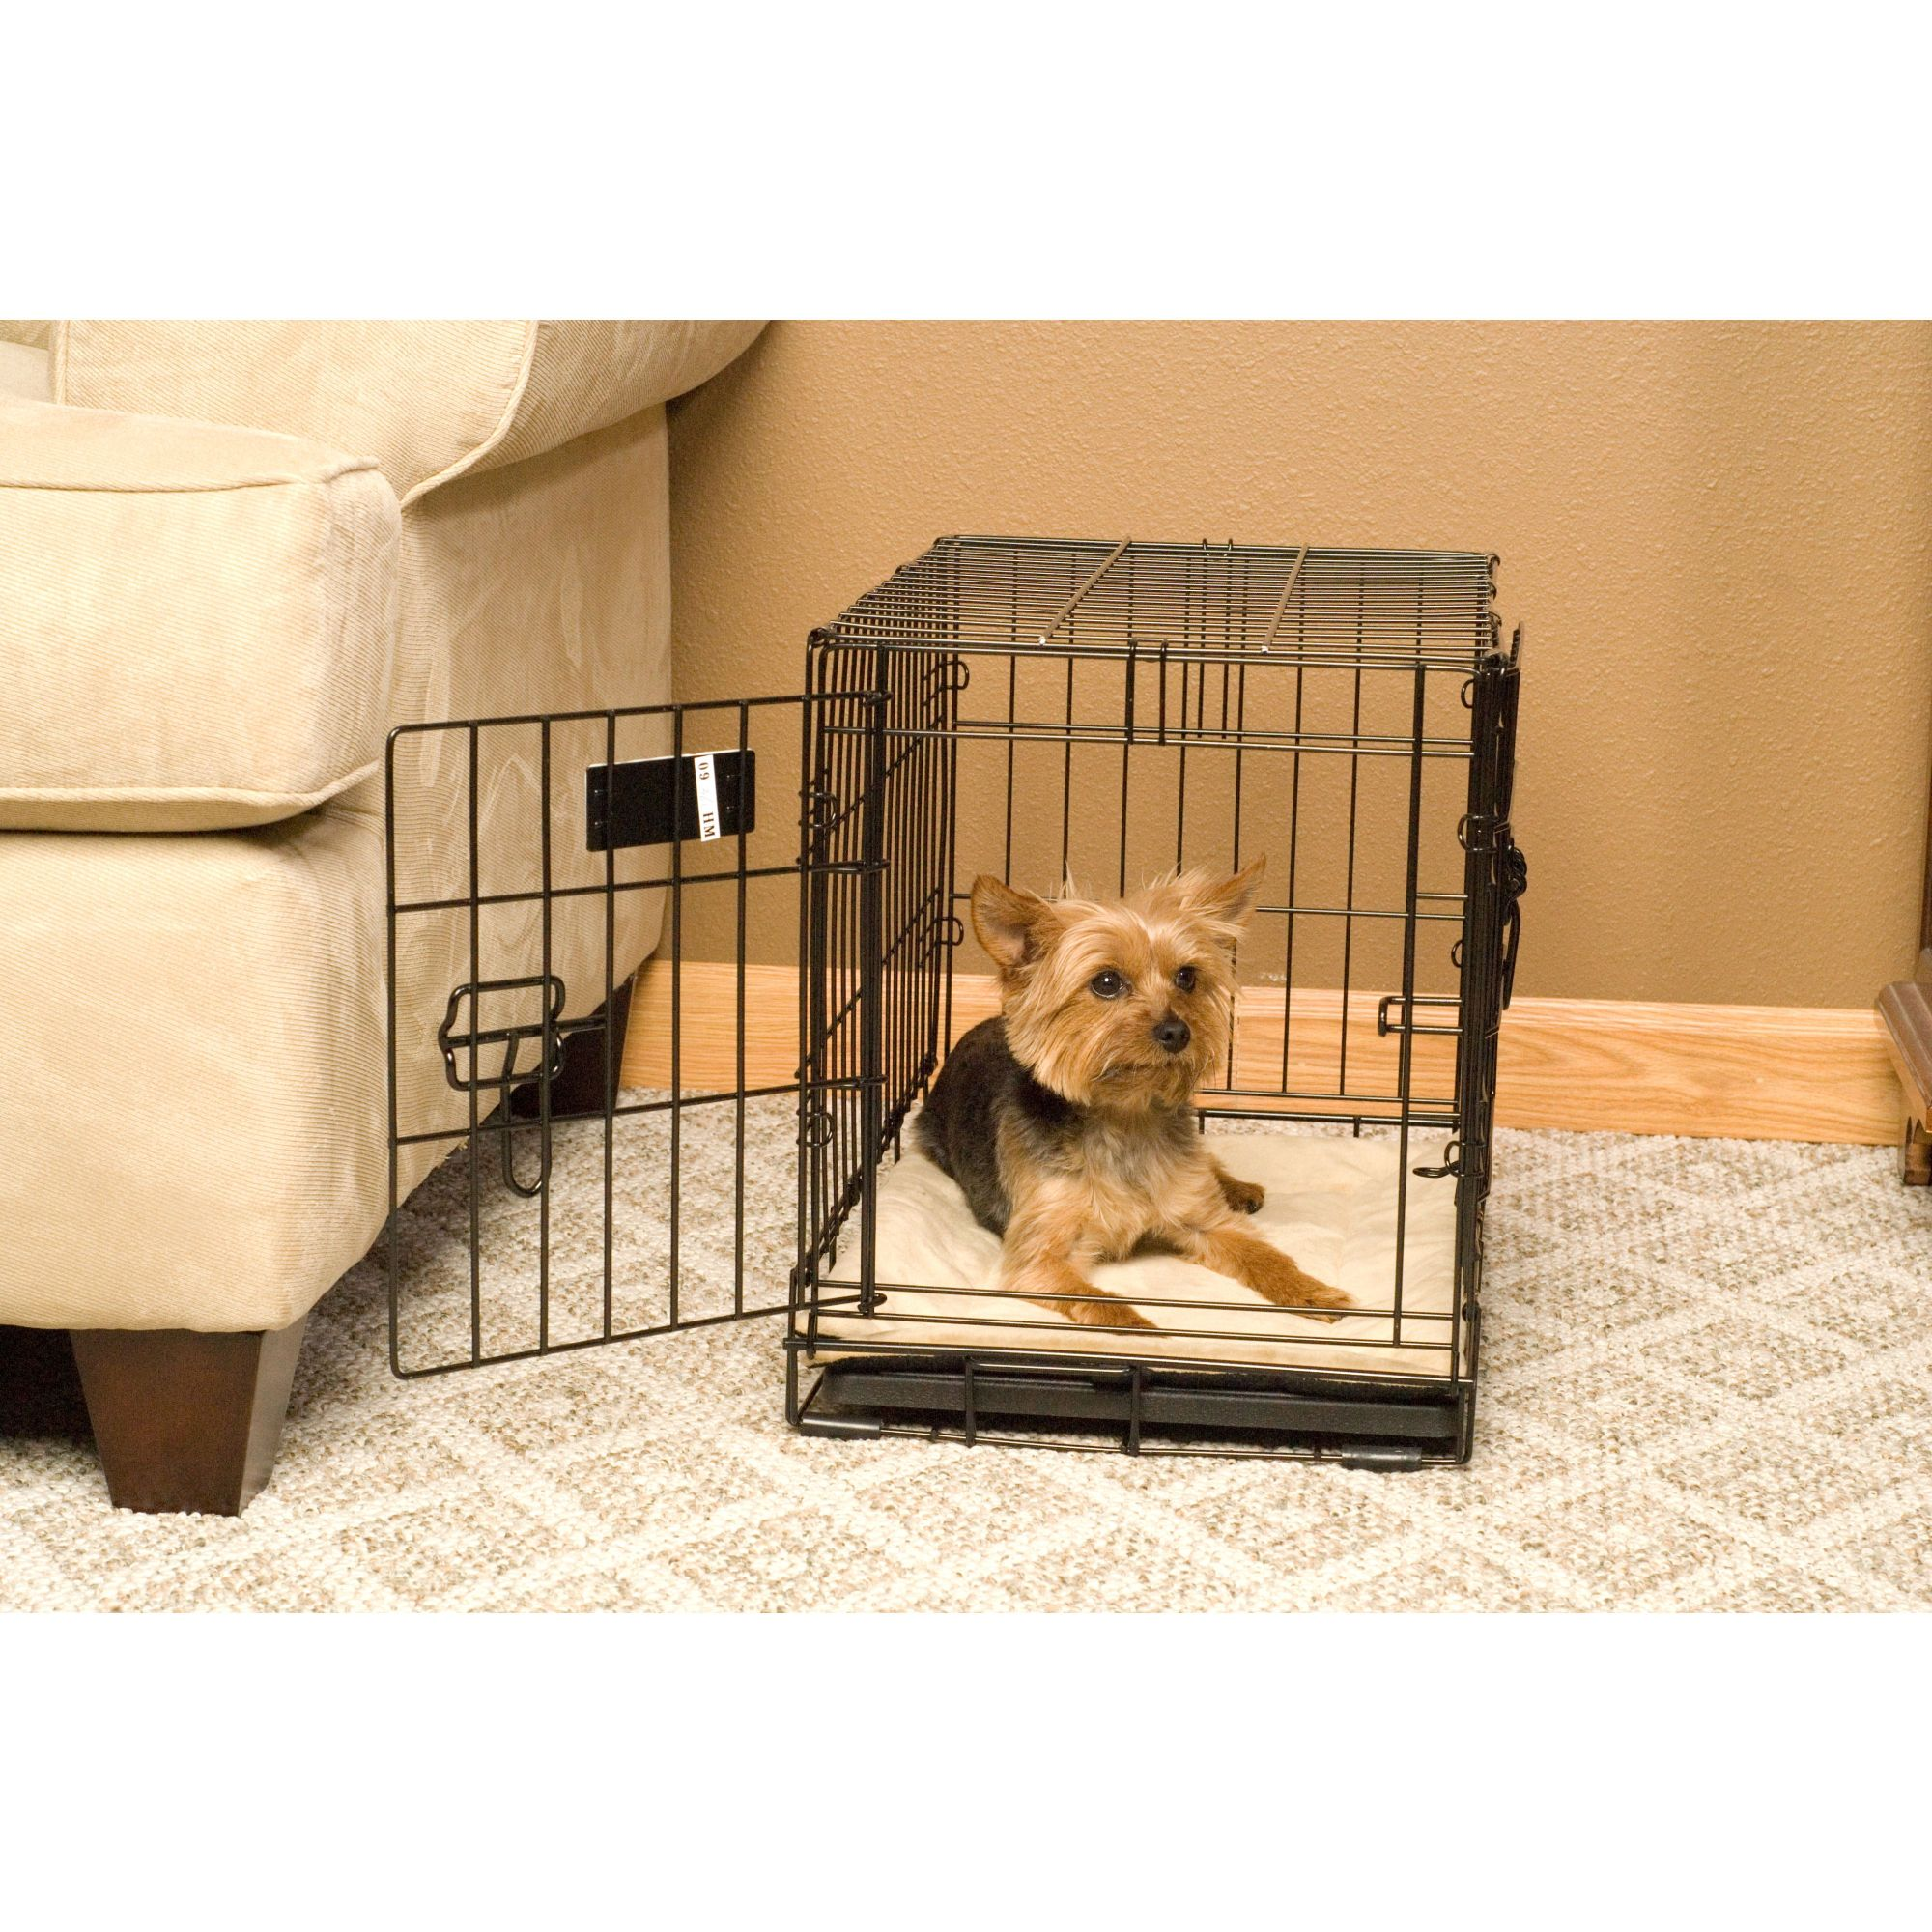 K Manufacturing SelfWarming Heated Crate Pad Dog Bed